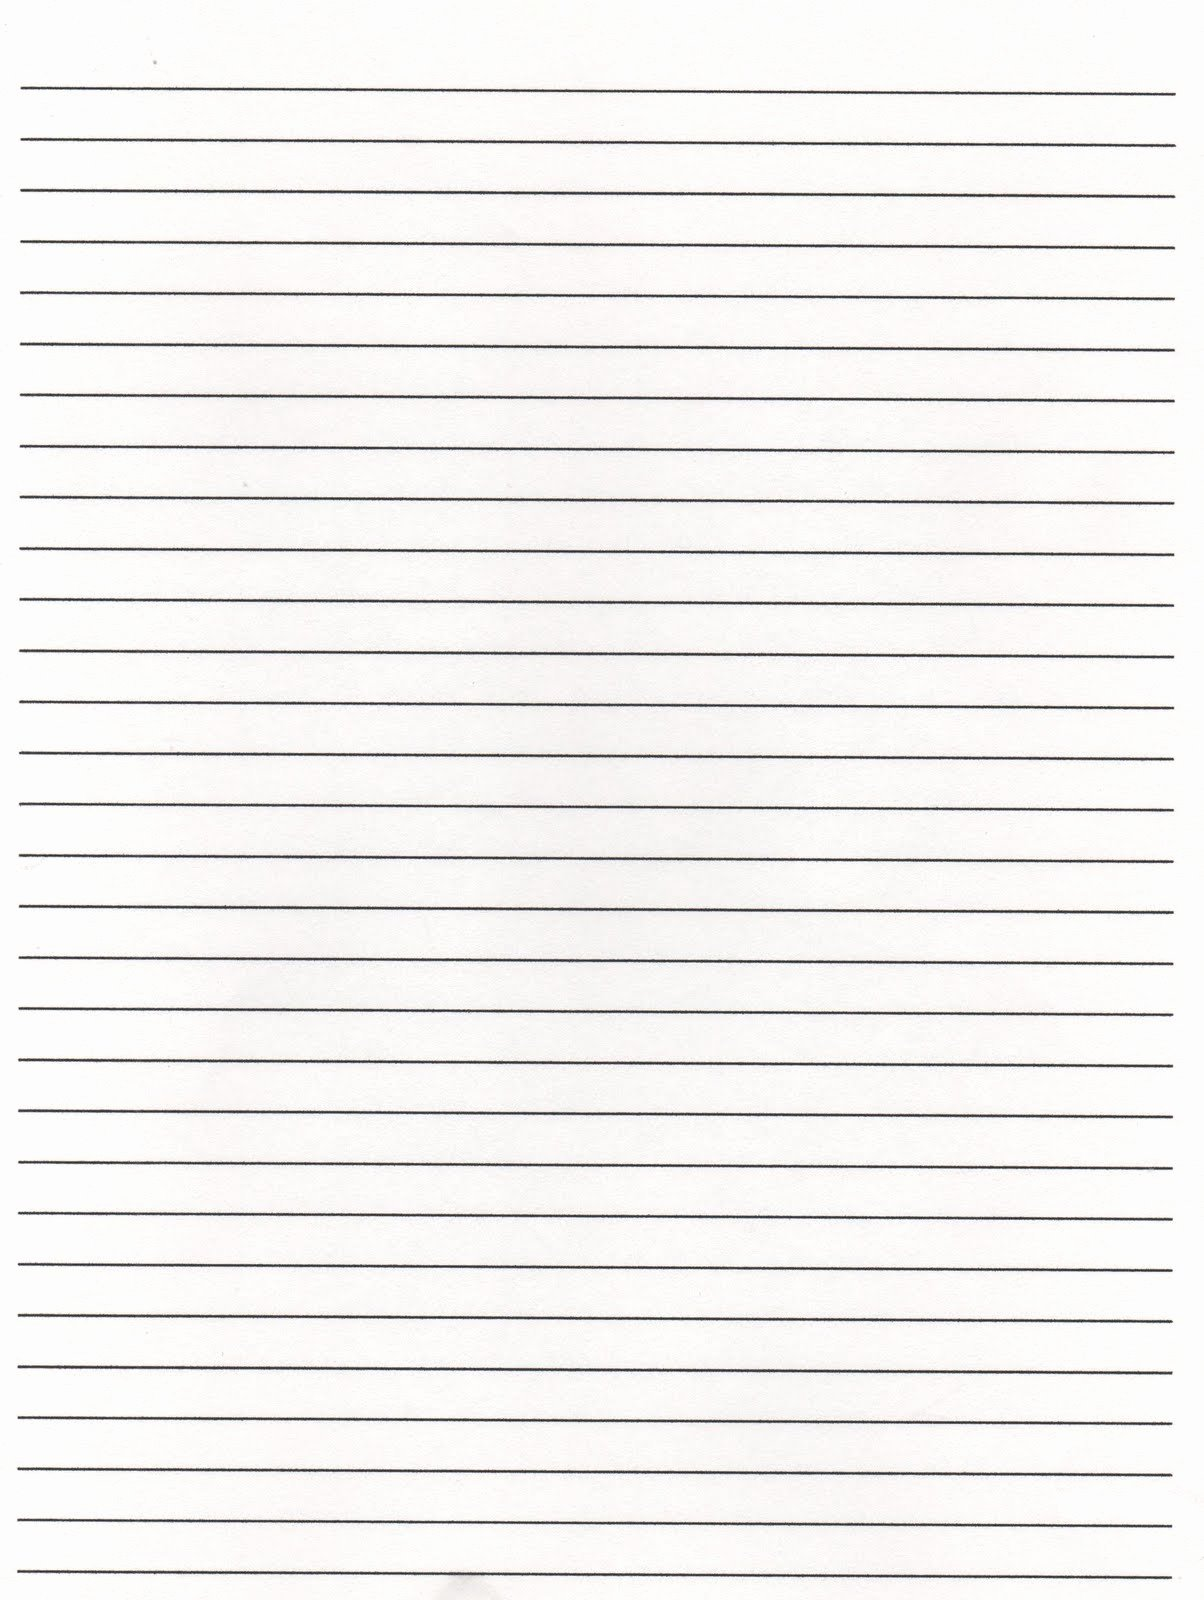 Free Printable Lined Paper Unique Free Printable Writing Paper with Lines and Border